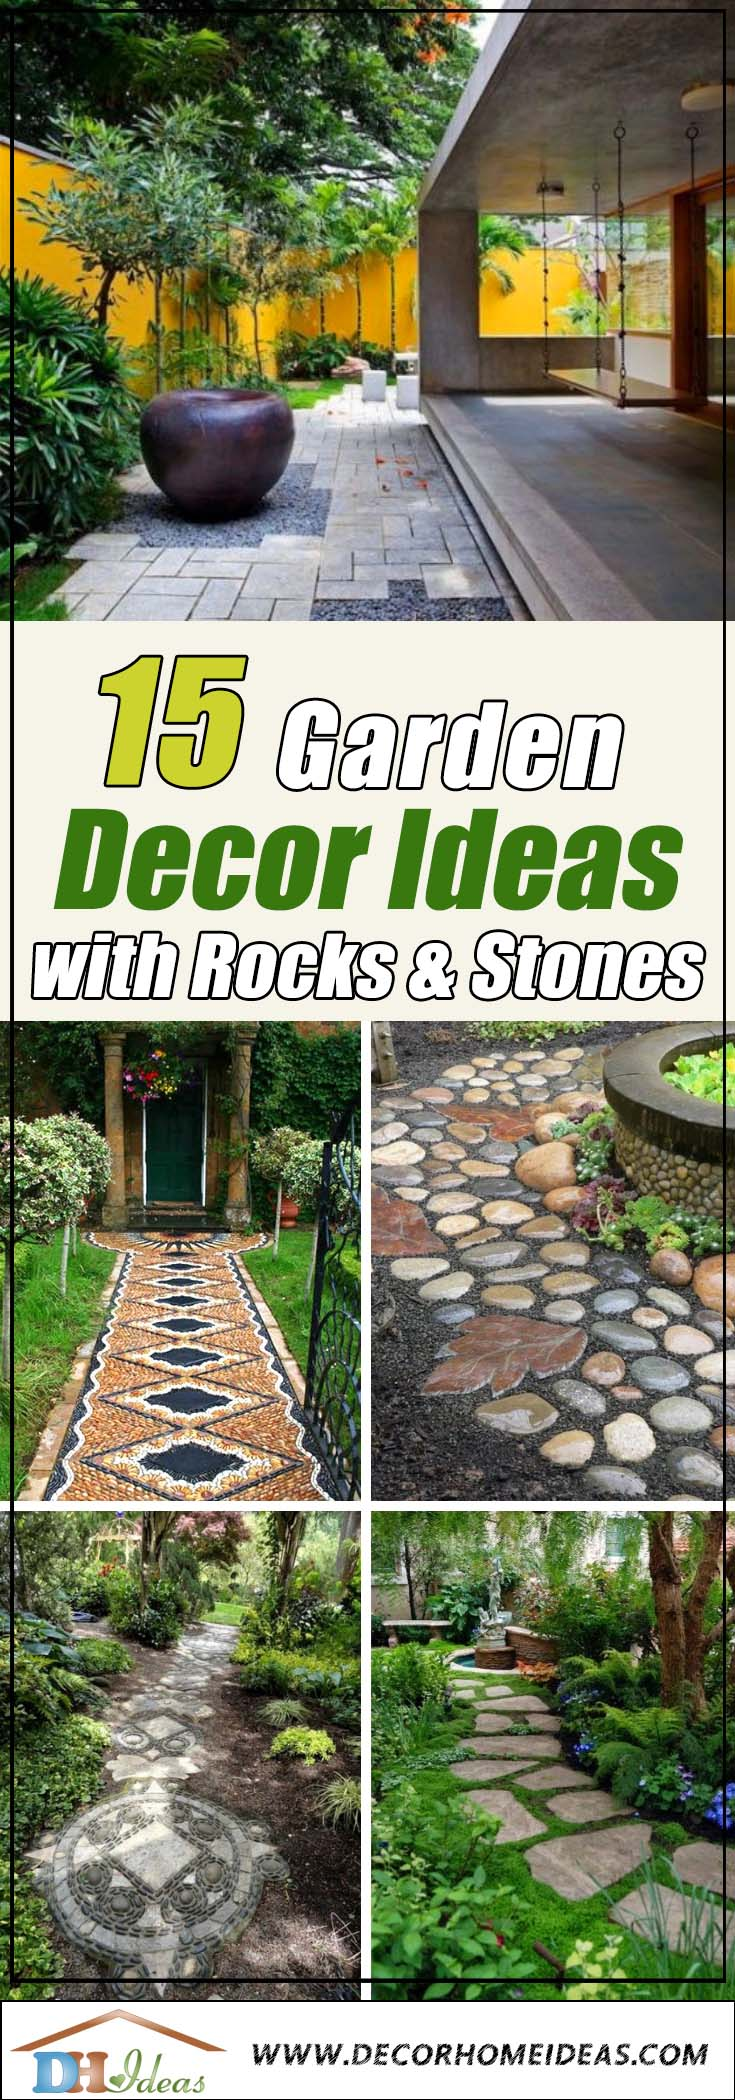 12 Garden Decorating Ideas With Rocks And Stones  Decor Home Ideas